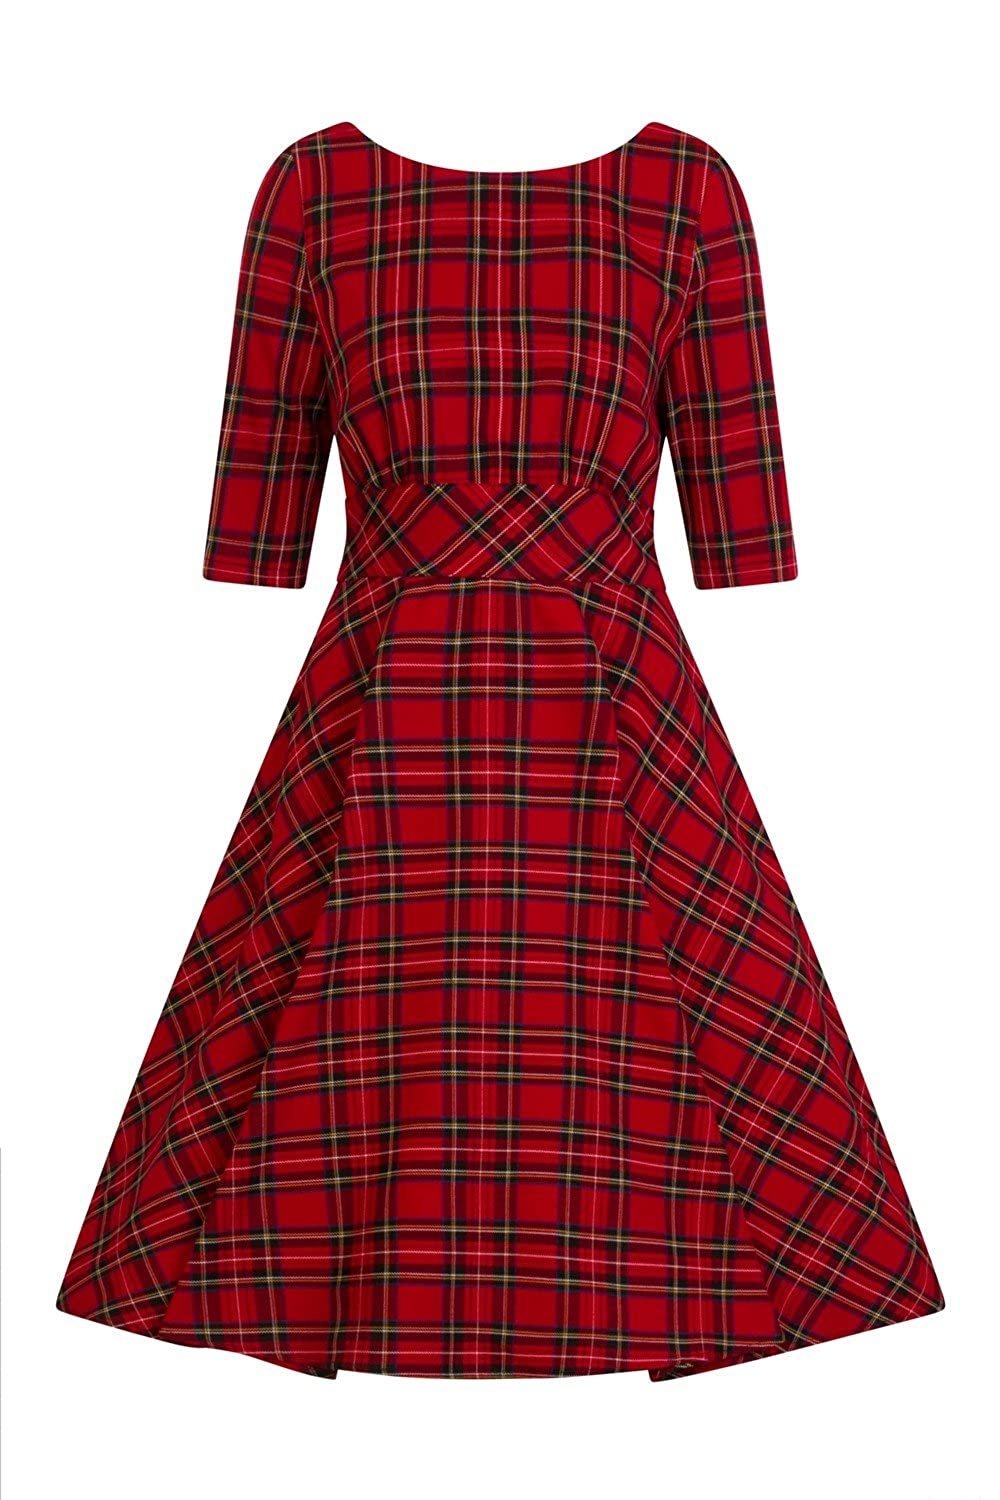 1940s Dress Styles Hell Bunny Irvine Tartan 1950s Vintage Retro Dress XS-4XL $72.99 AT vintagedancer.com